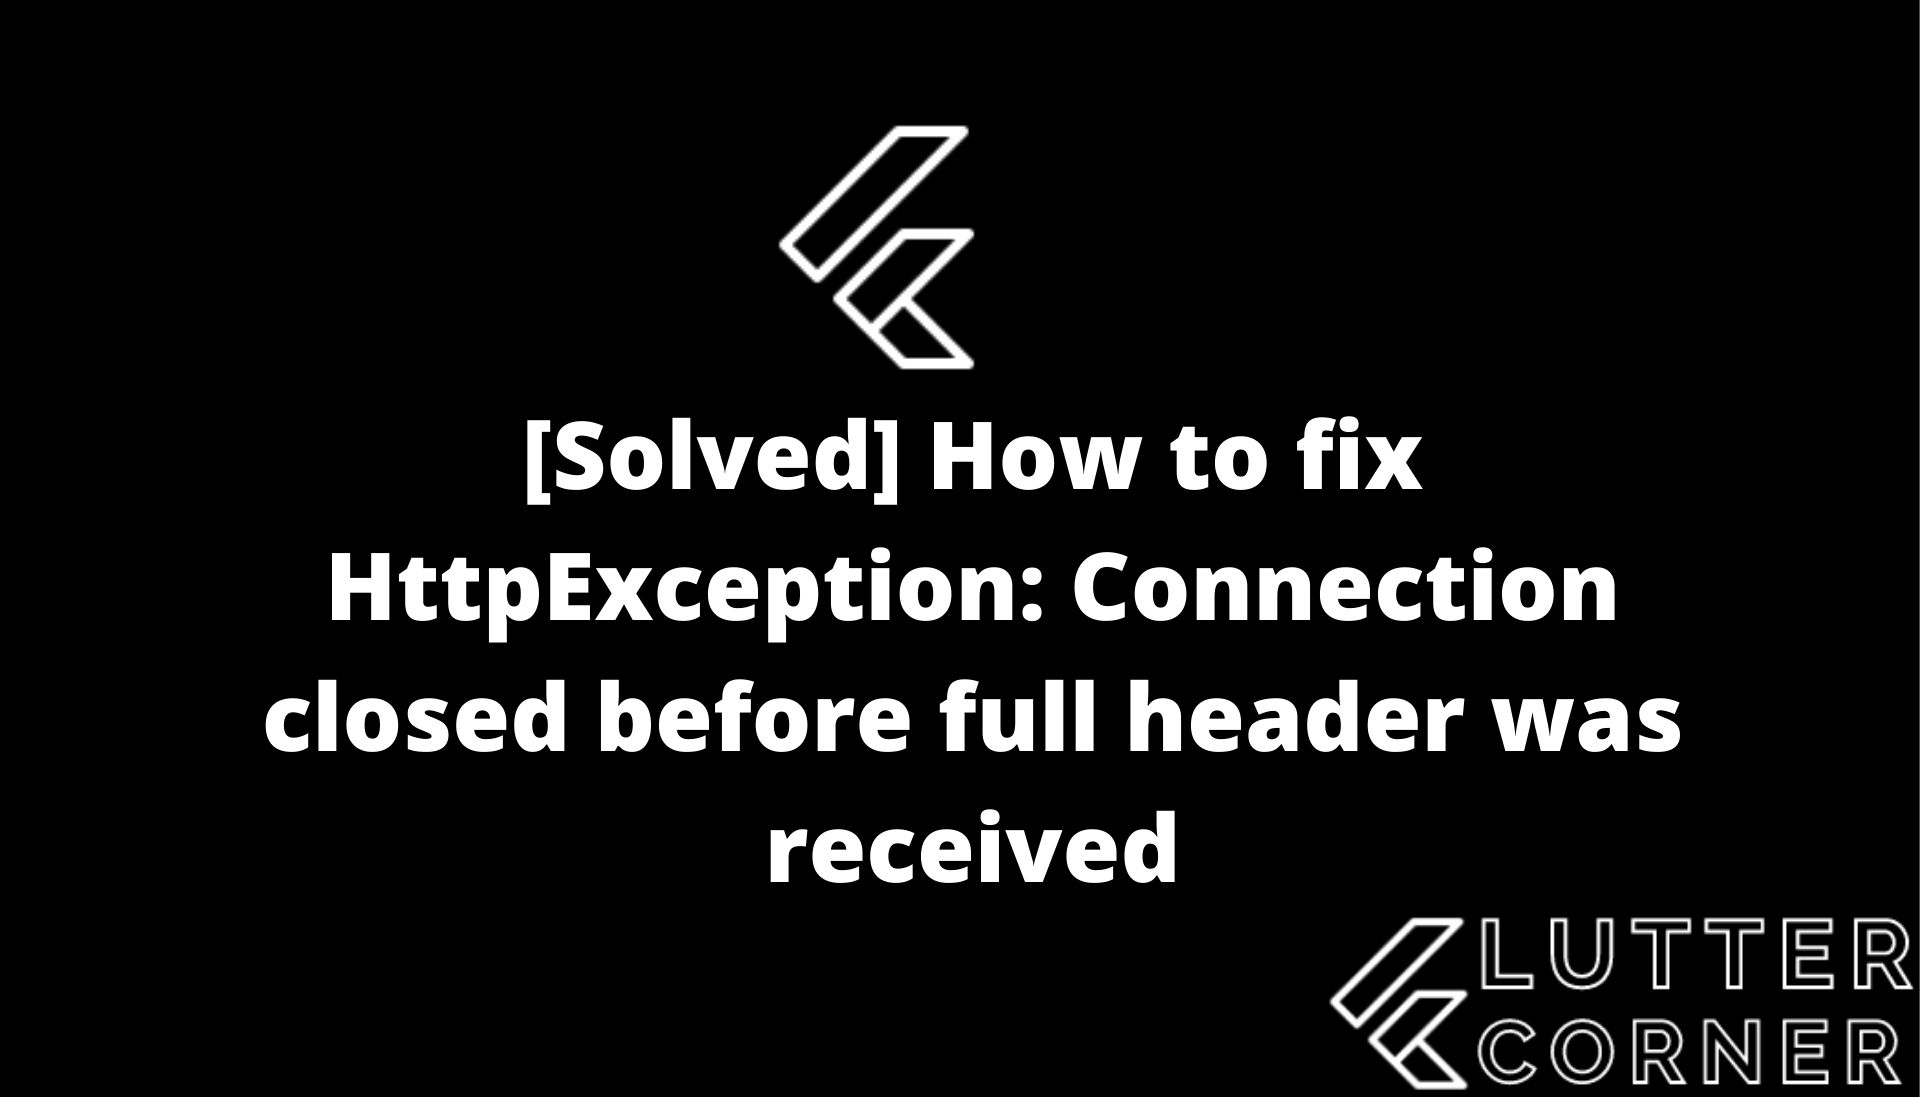 HttpException: Connection closed before full header was received,httpexception connection closed flutter, fix httpexception connection closed flutter, How to fix HttpException: Connection closed before full header was received